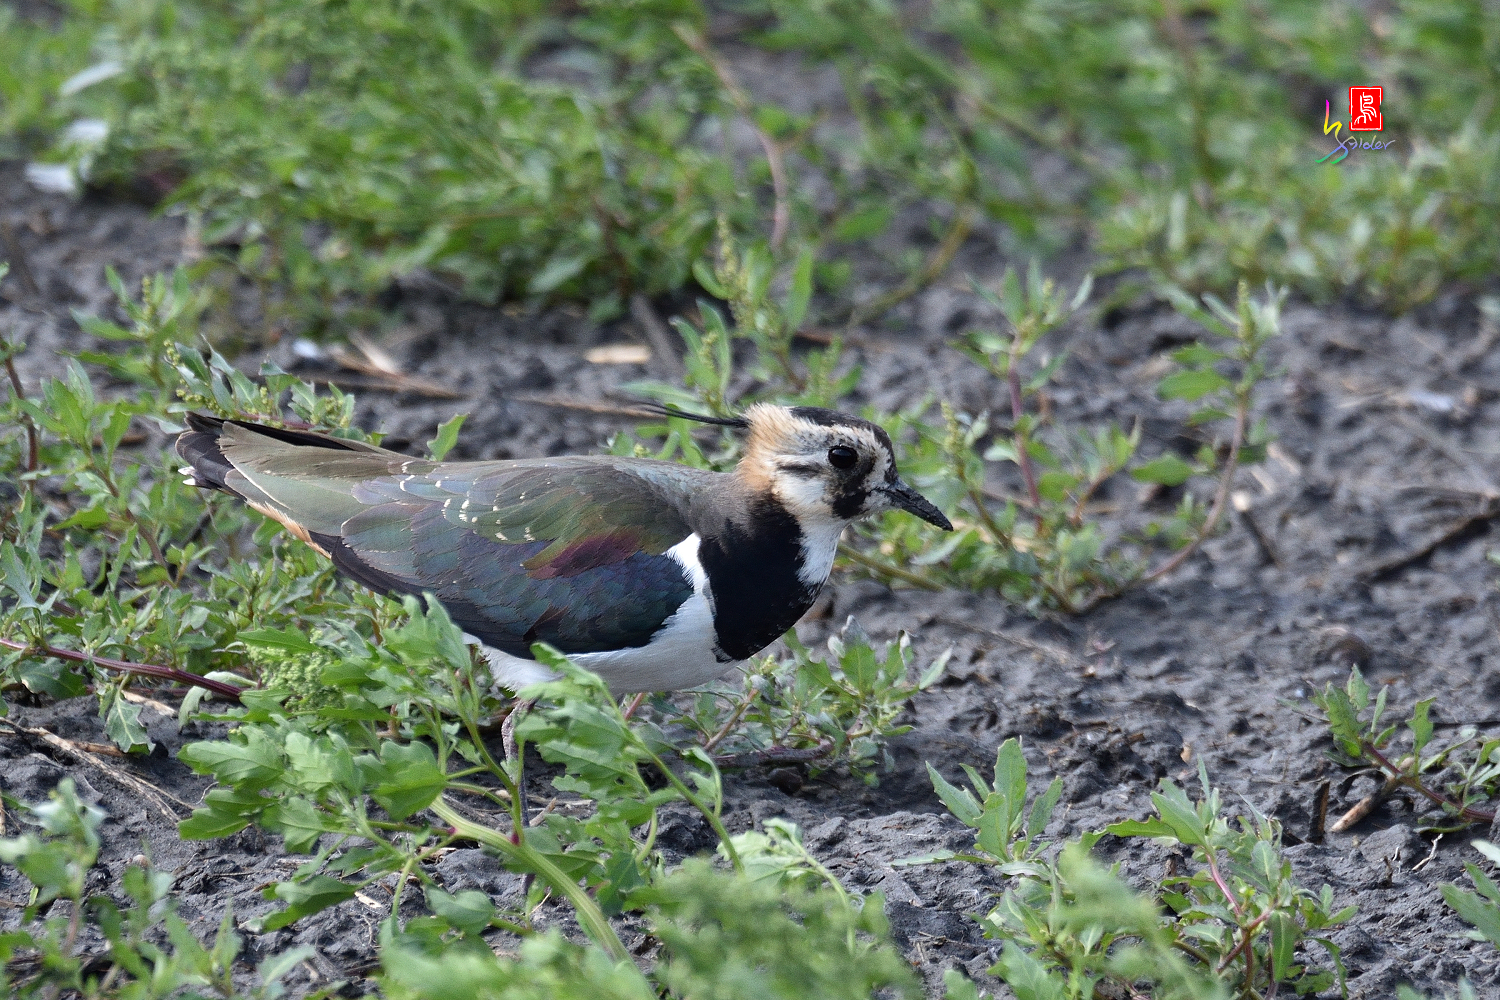 Nprthern_Lapwing_7209